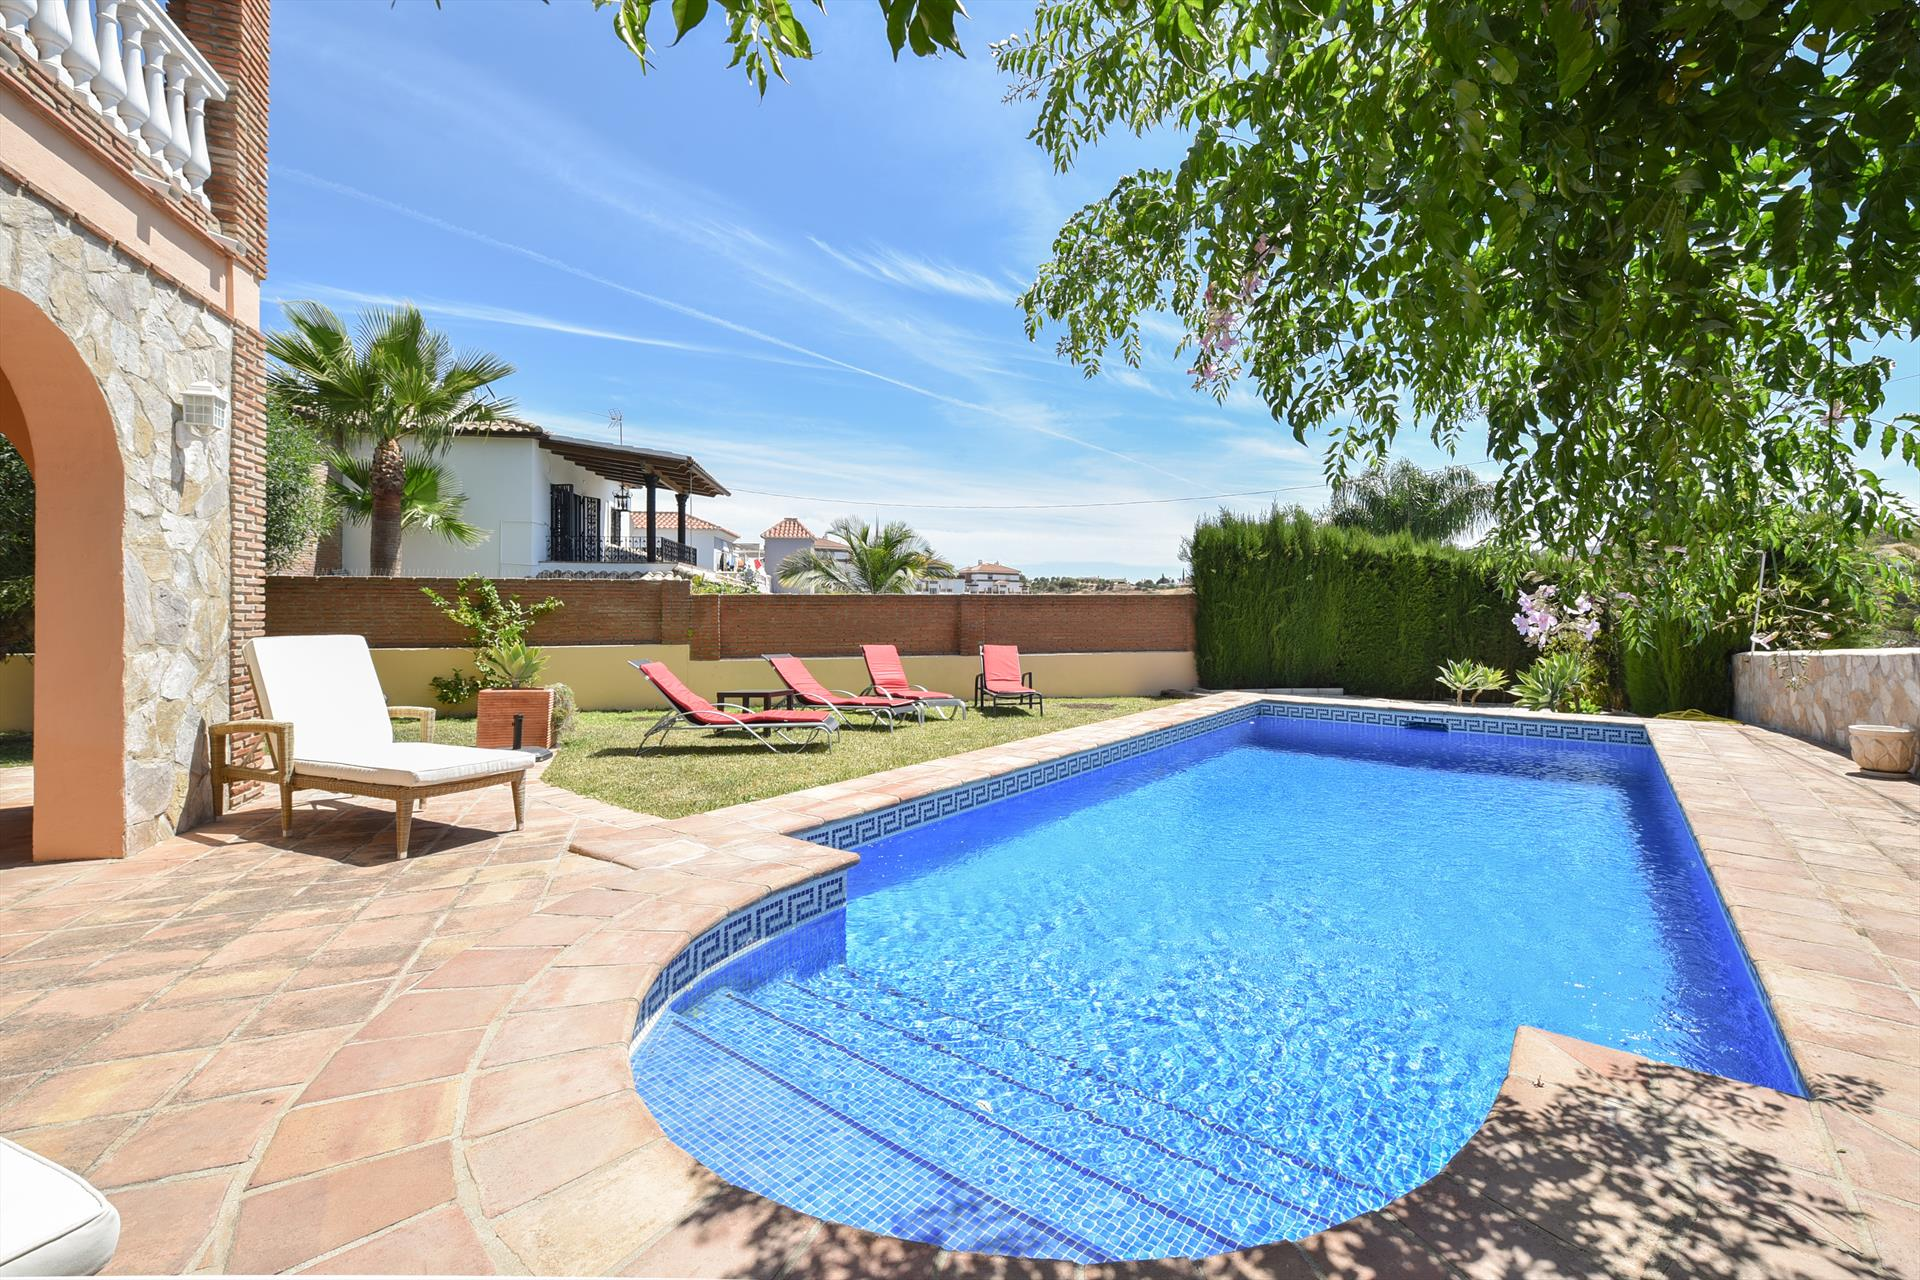 Casa Arroyo Real, Large and comfortable villa in Mijas costa, Andalusia, Spain  with private pool for 10 persons.....